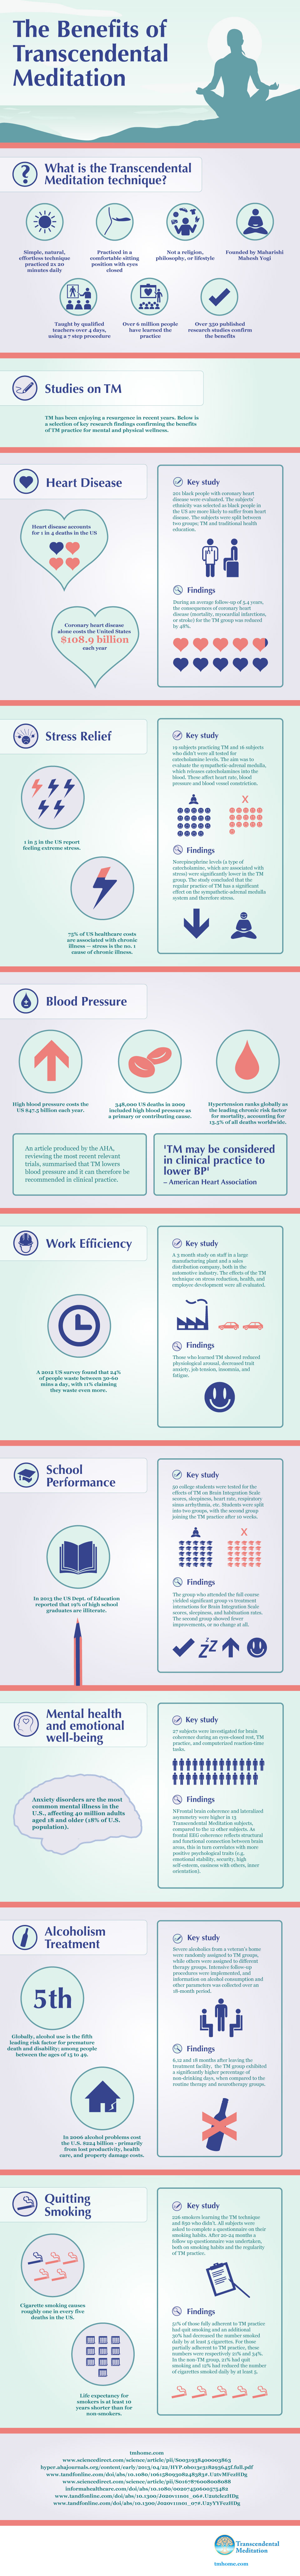 The Essence And Benefits Of Transcendental Meditation Infographic